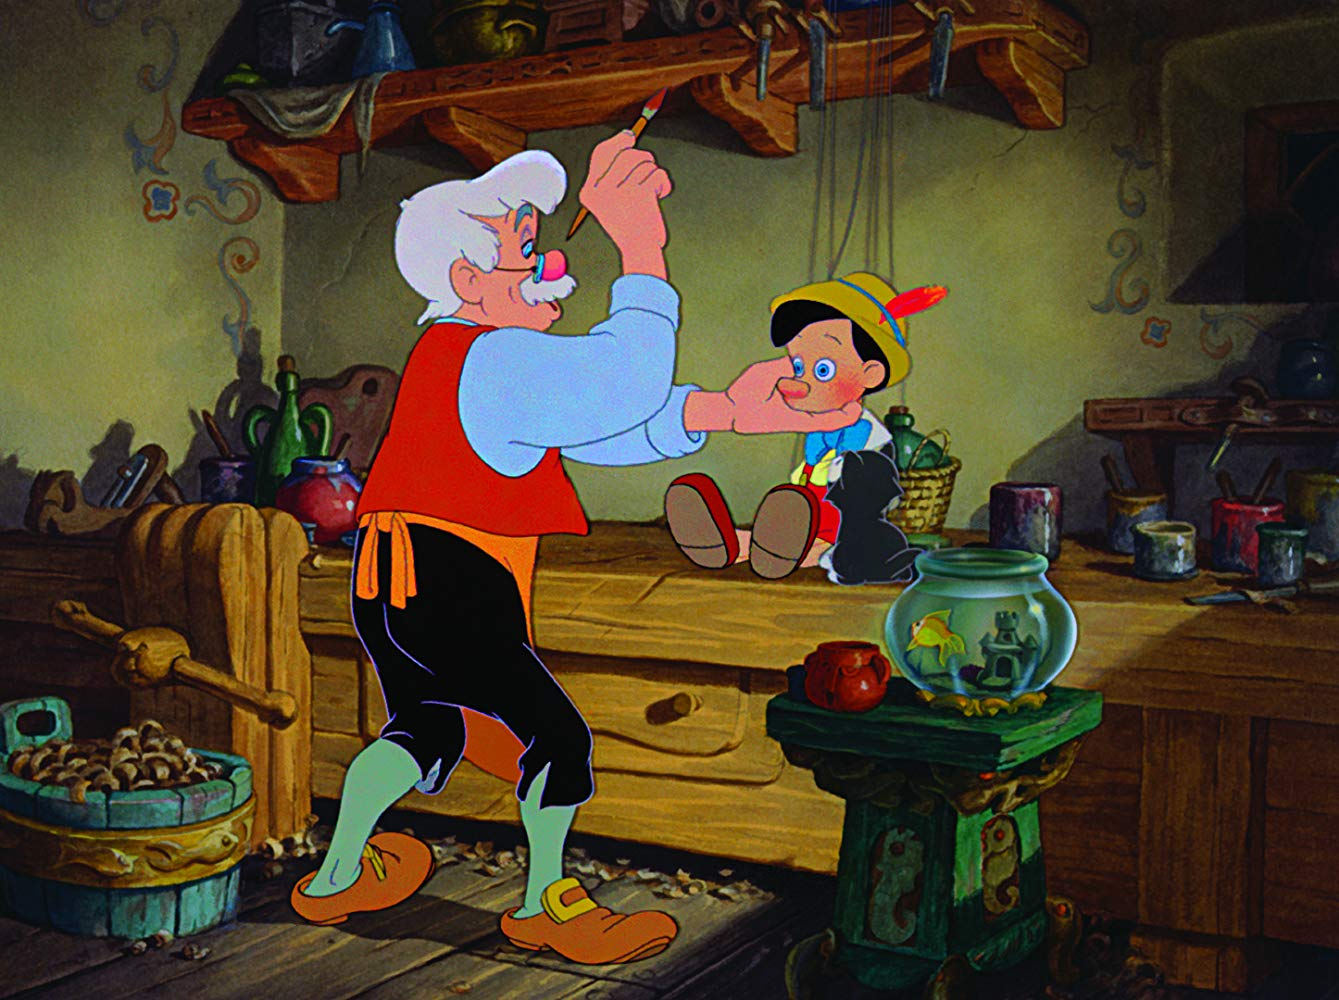 Gepetto brings Pinocchio to life in Pinocchio (1940)